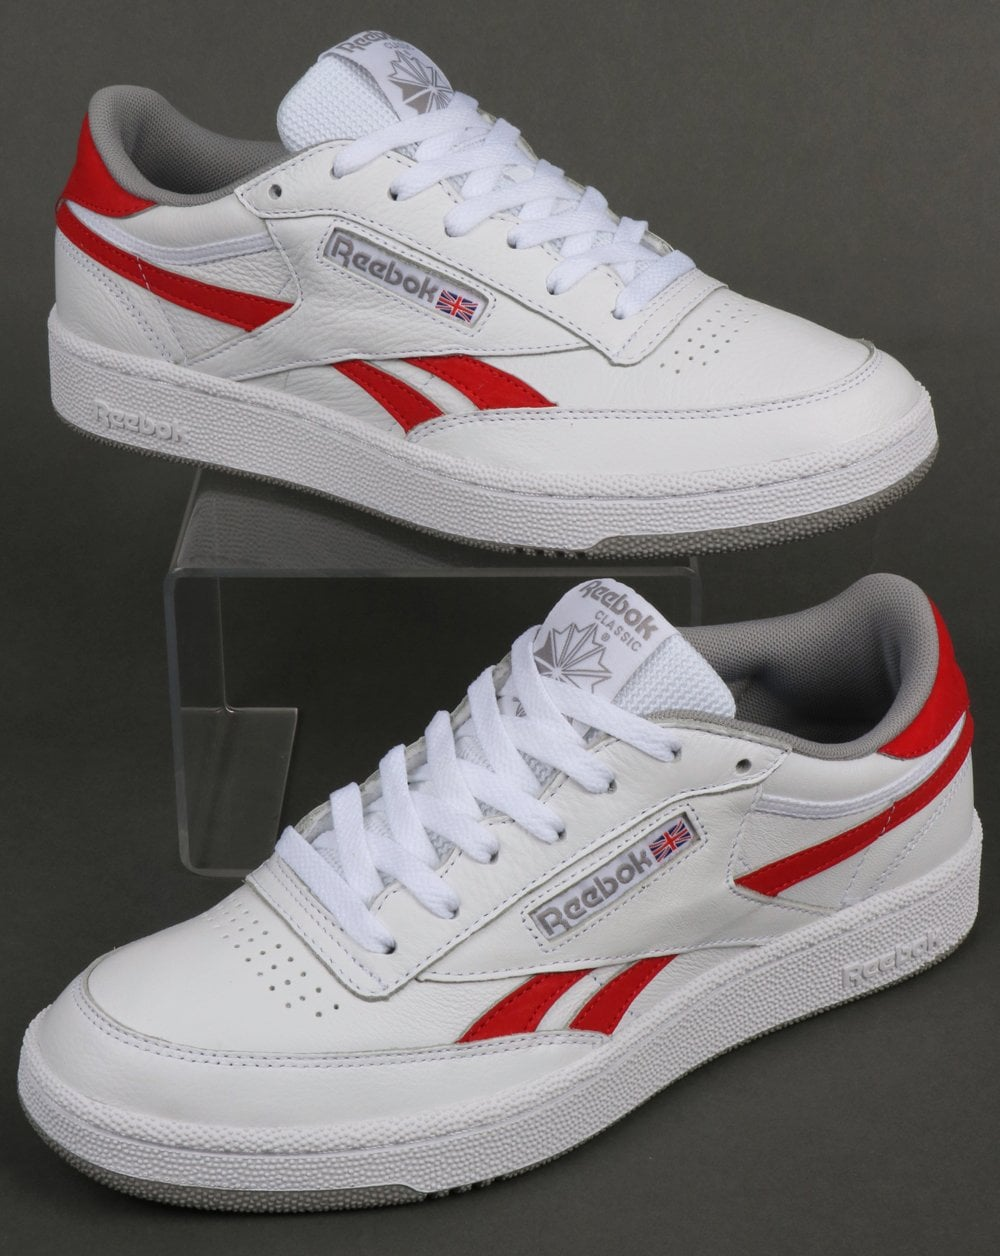 2a378d85dc6 Reebok Reebok Revenge Plus Trainers White Red